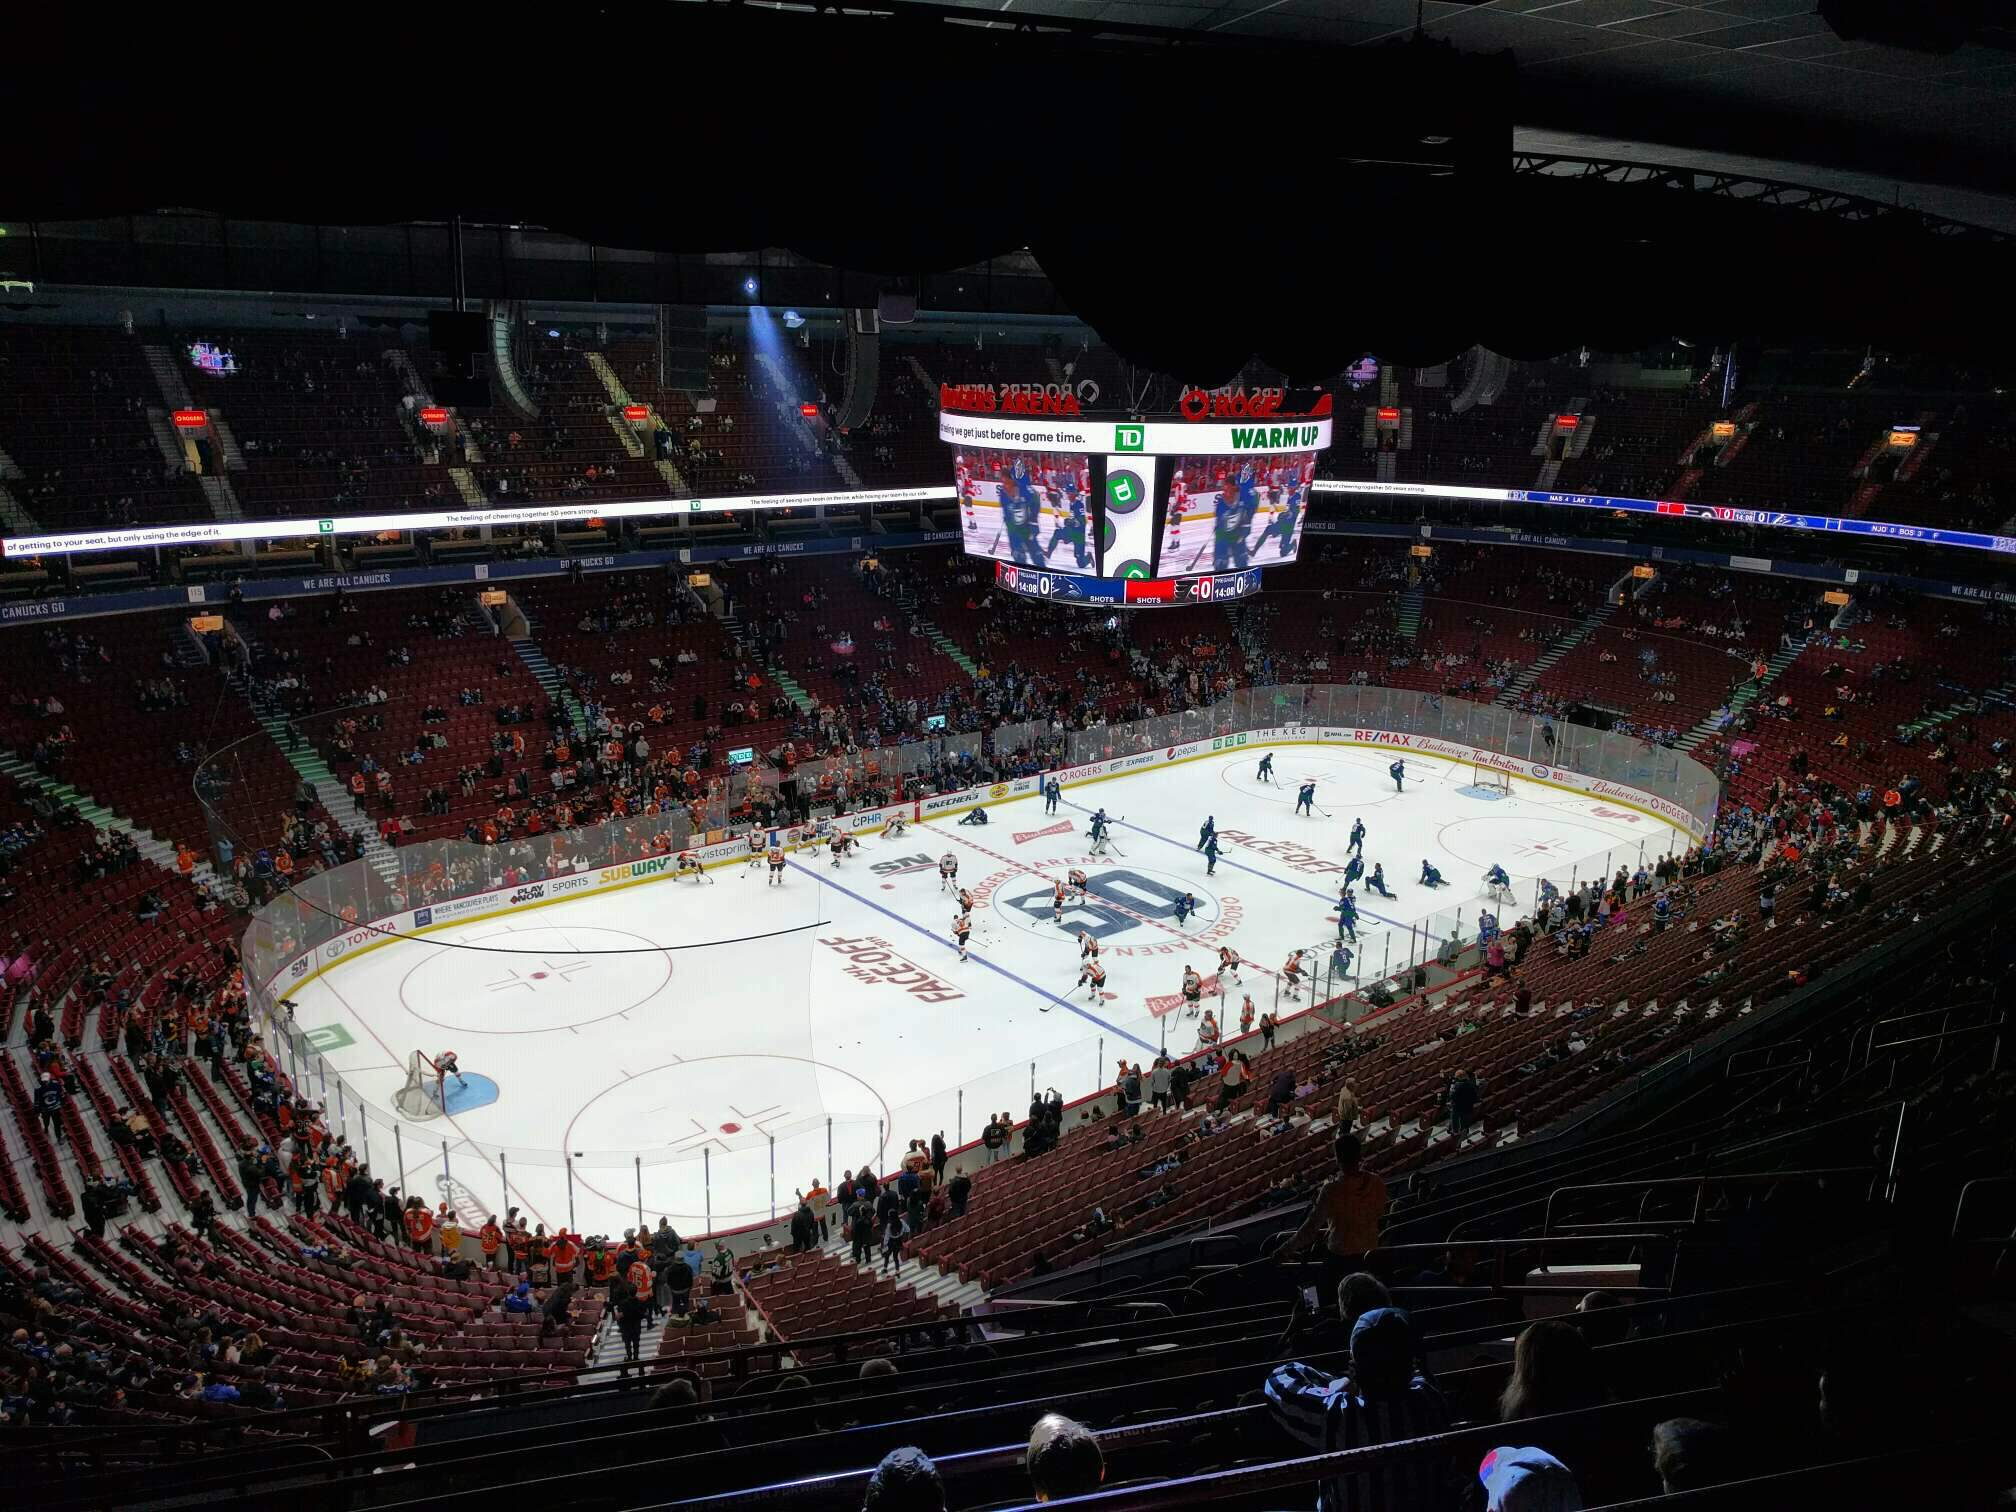 Rogers Arena Section 311 Row 15 Seat 110